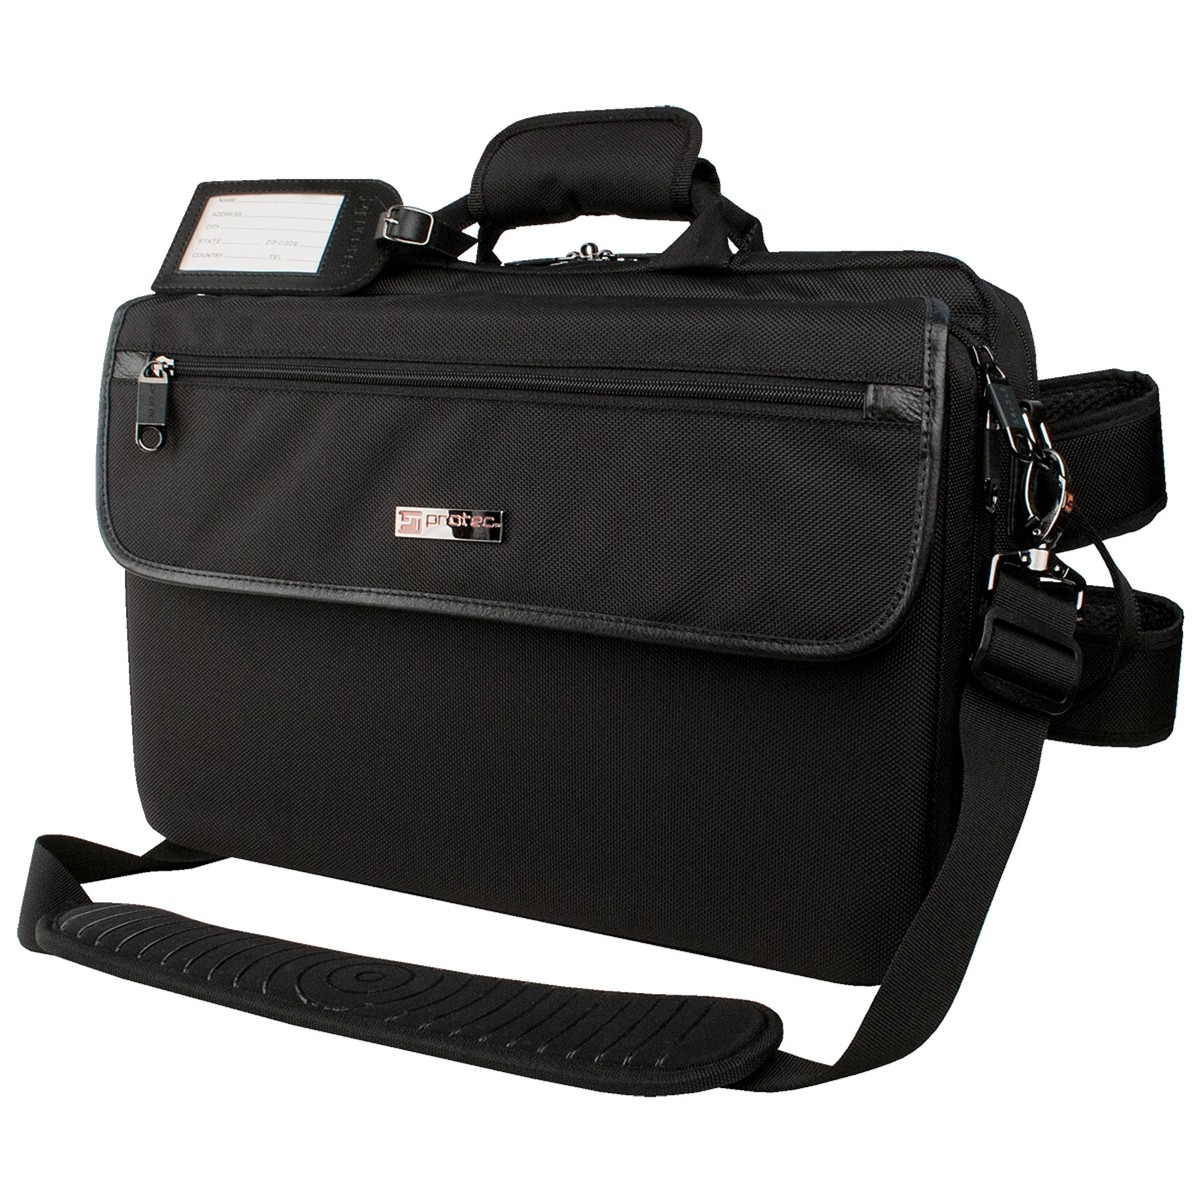 Protec Flute/Piccolo PRO PAC Case - LUX Version with Sheet Music Messenger (LX308PICC)